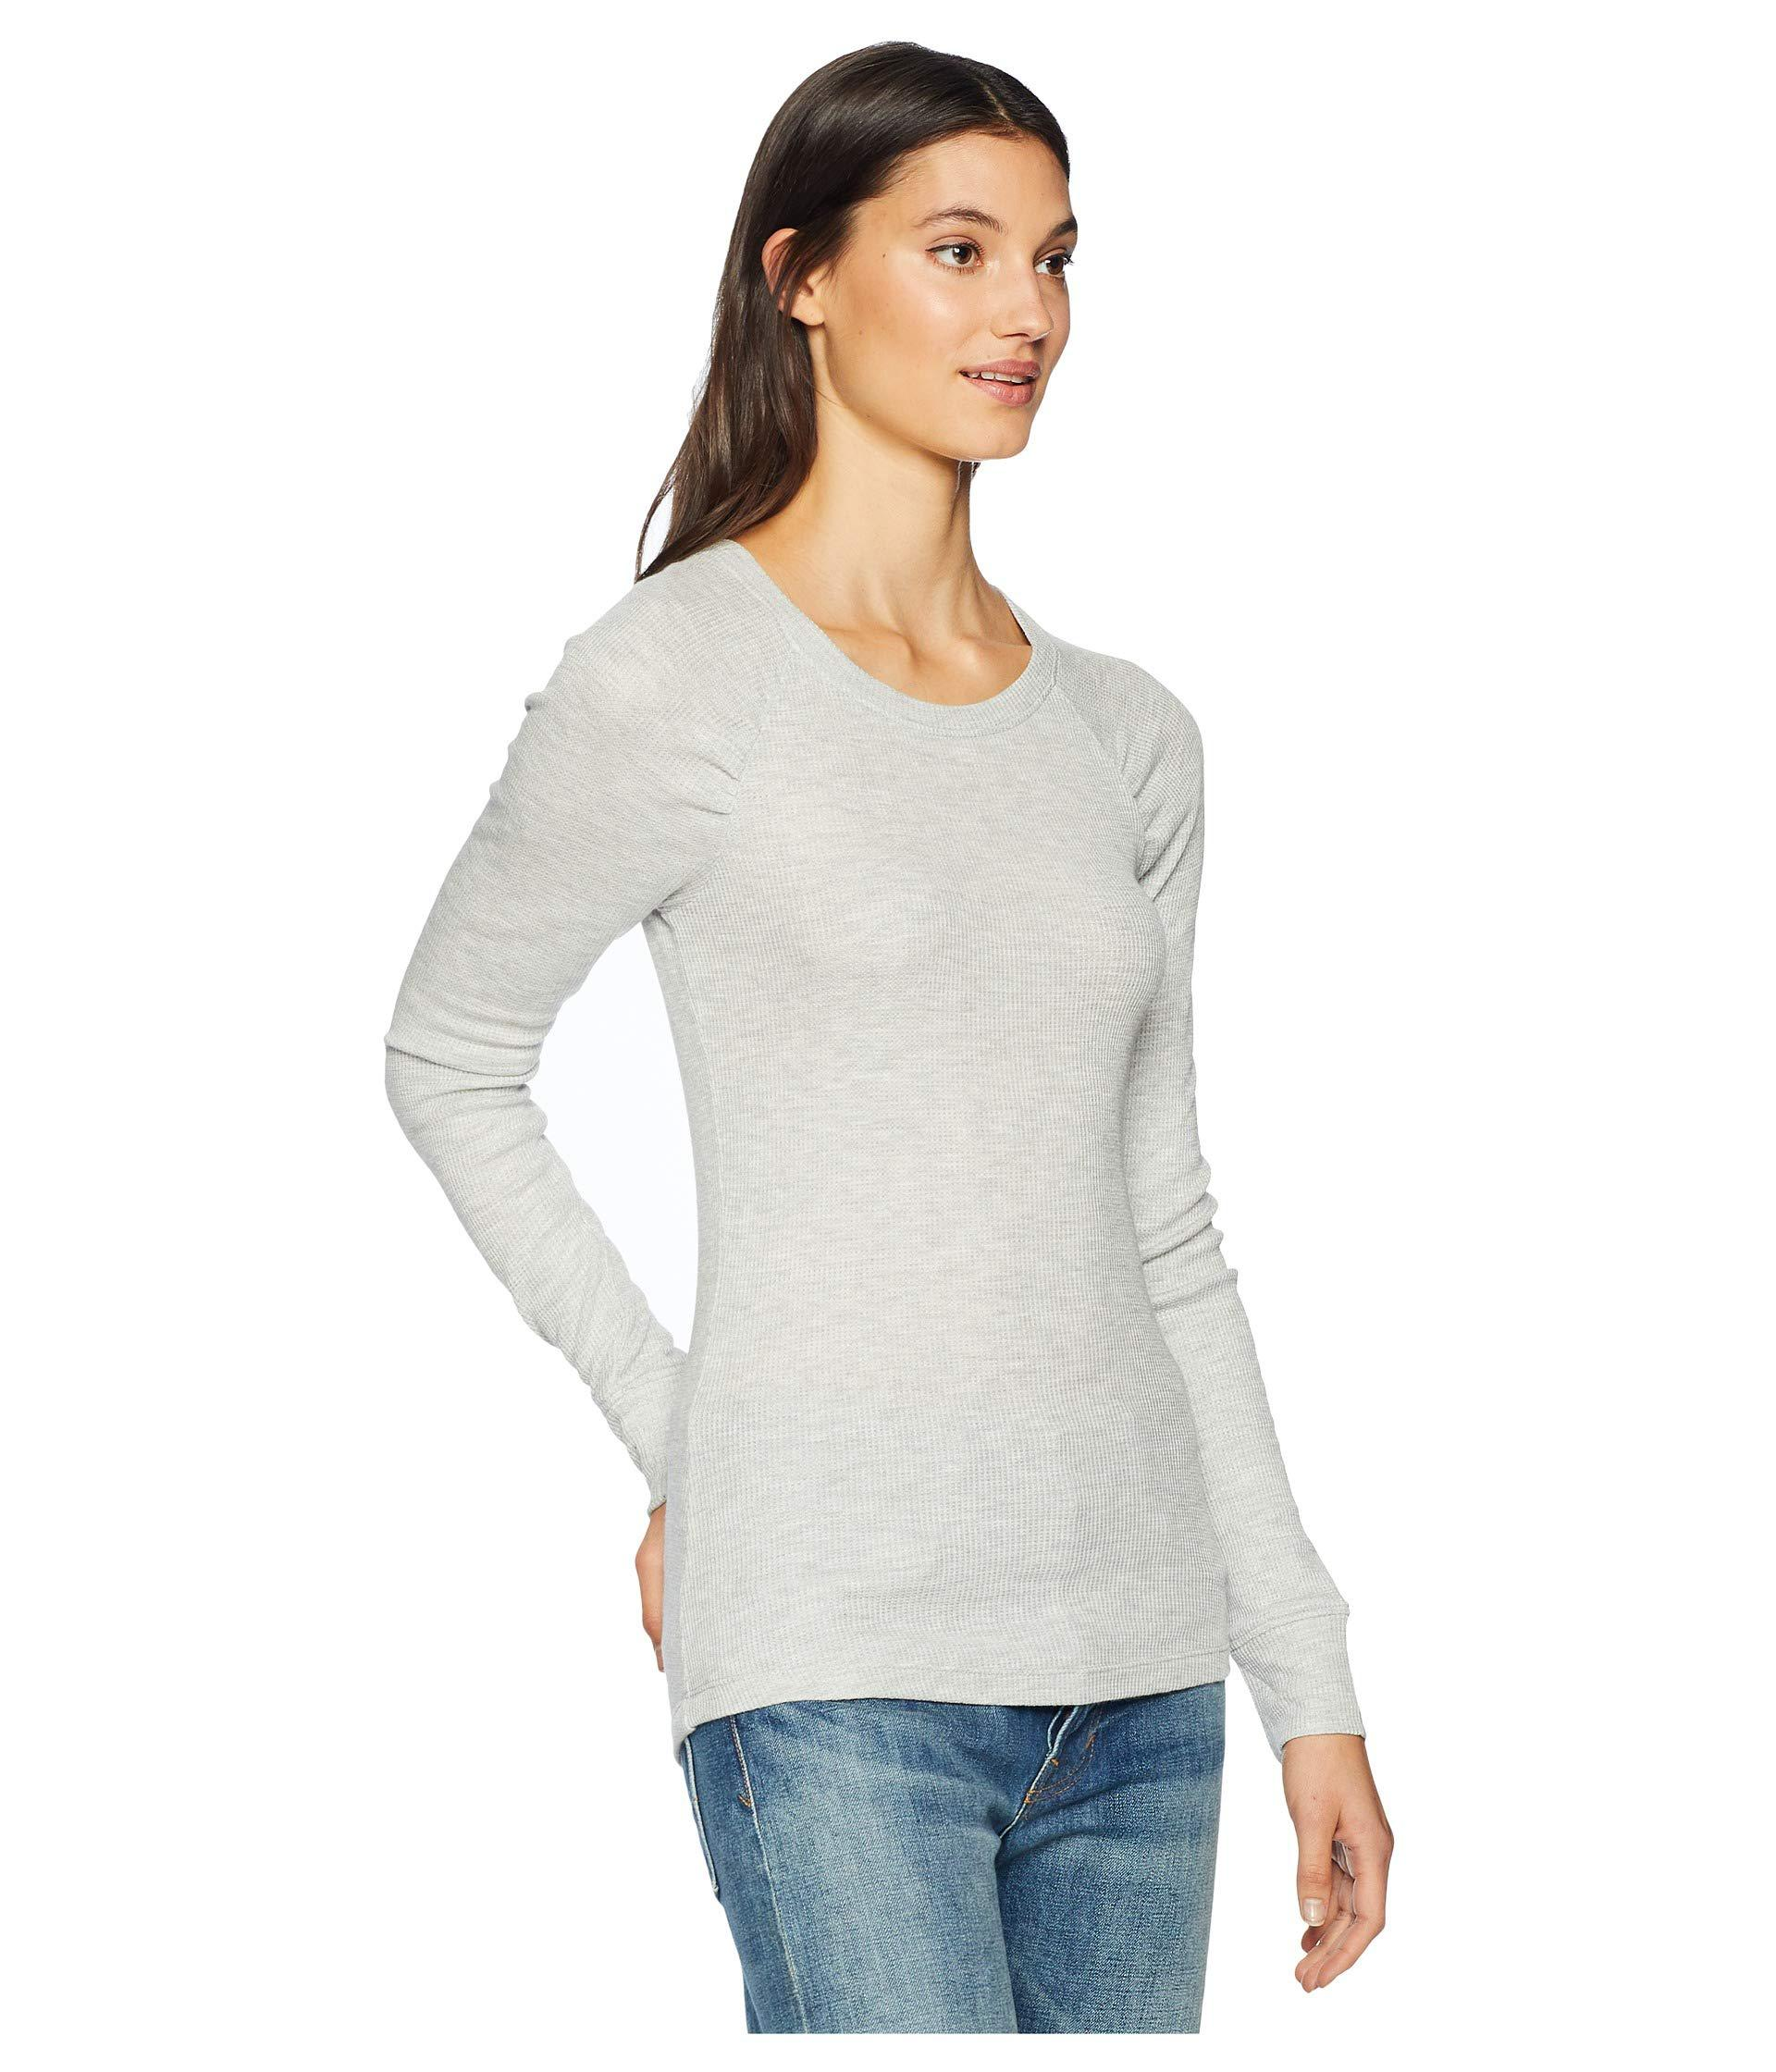 dffe64b63c895e Lyst - Sanctuary Kenzie Ruched Top (scarlet) Women s Clothing in Gray